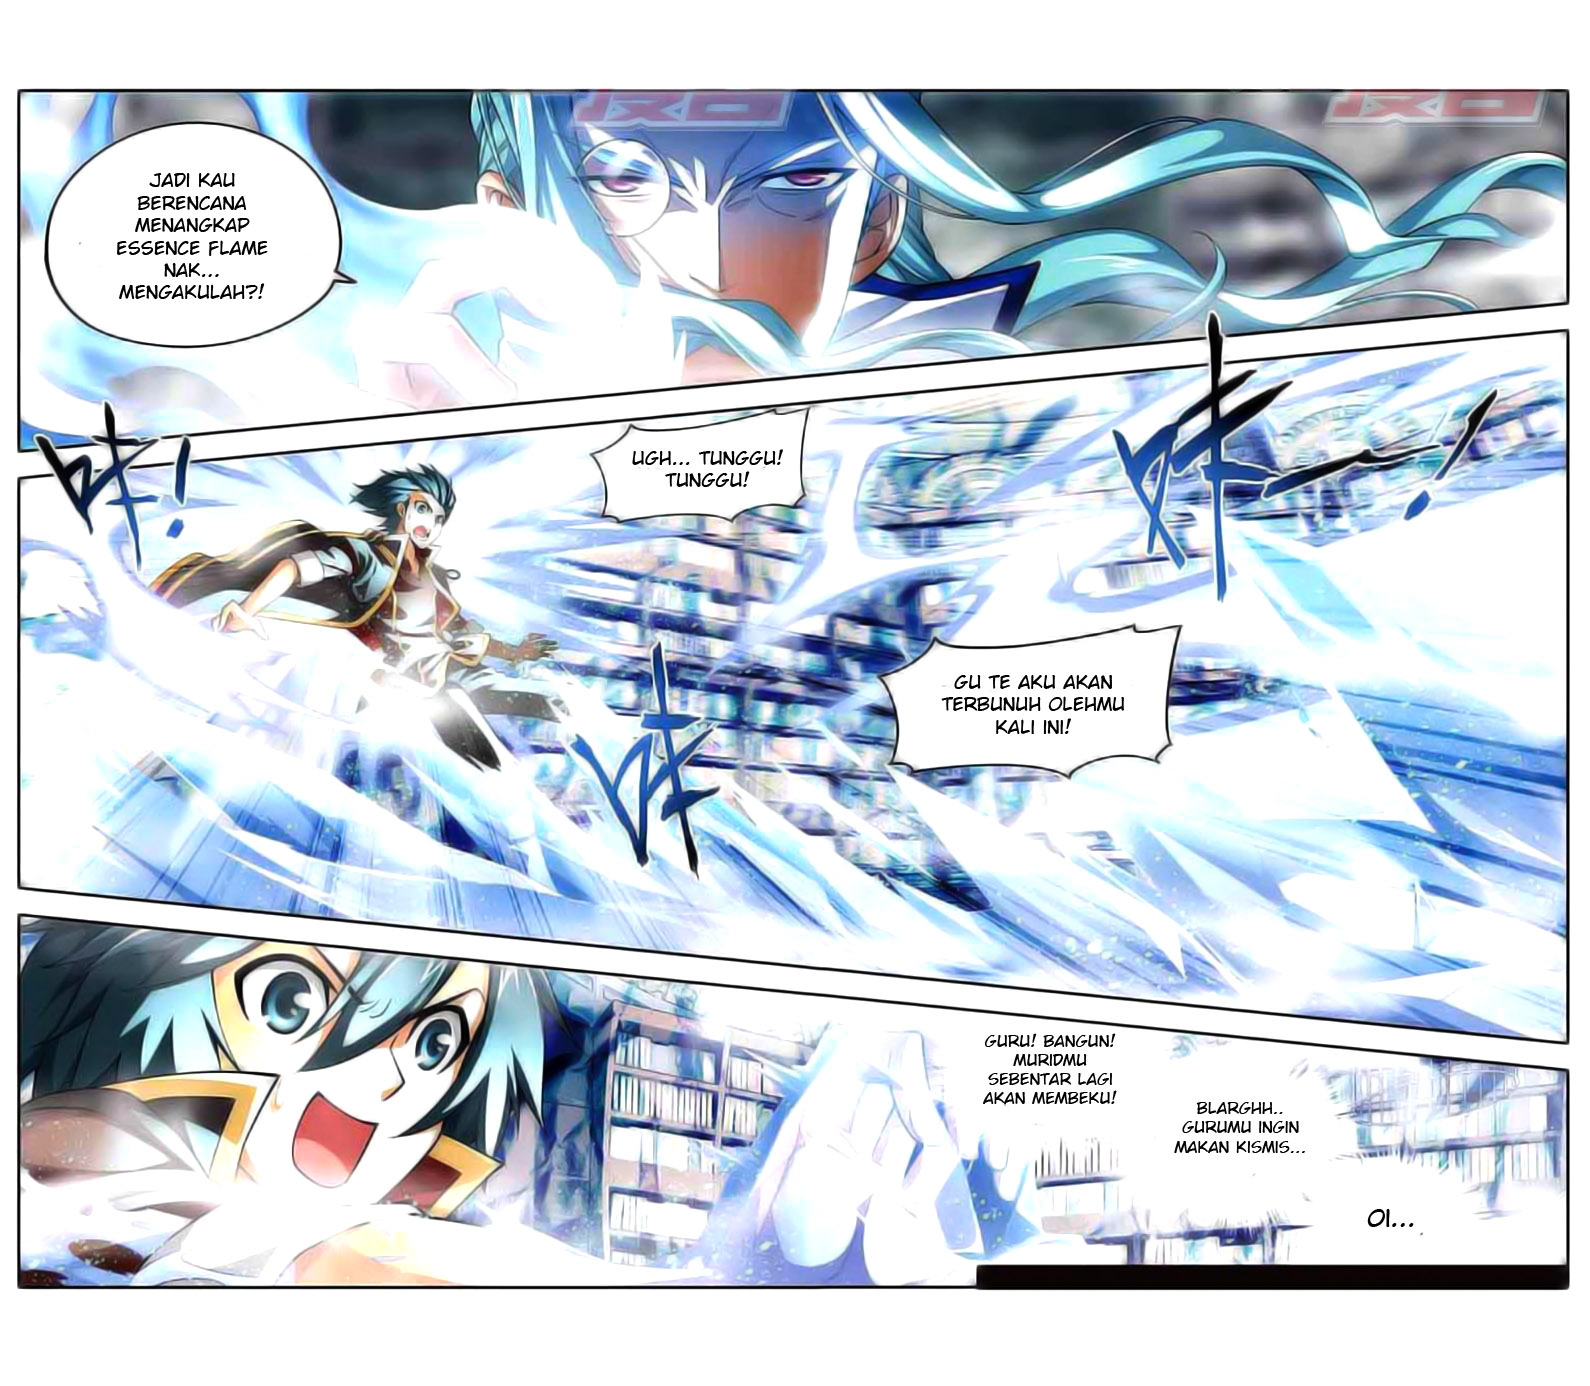 Dilarang COPAS - situs resmi www.mangacanblog.com - Komik battle through heaven 038 - chapter 38 39 Indonesia battle through heaven 038 - chapter 38 Terbaru 26|Baca Manga Komik Indonesia|Mangacan